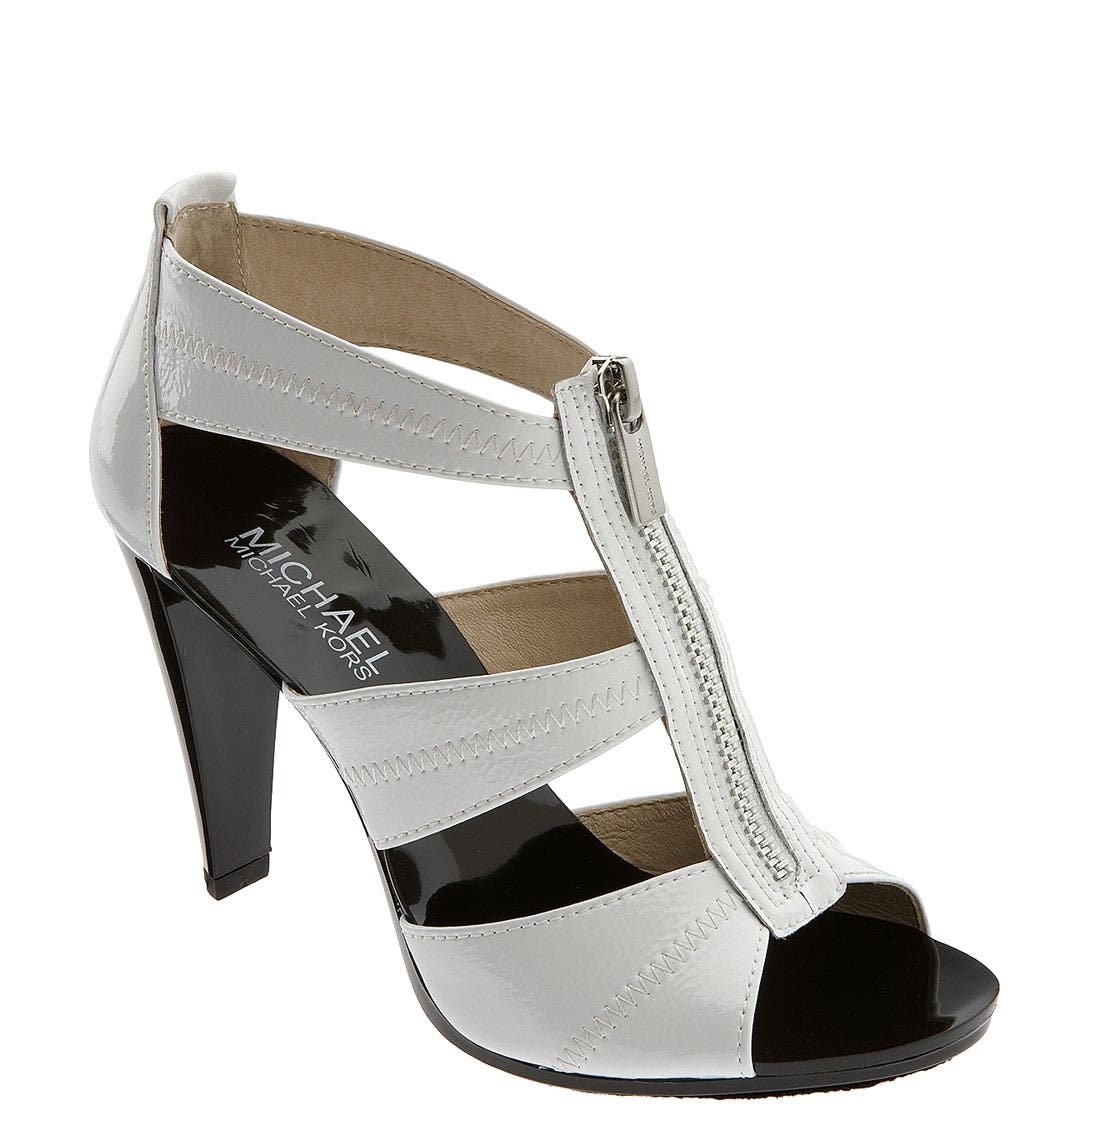 'Berkley' Sandal,                             Main thumbnail 1, color,                             White Patent